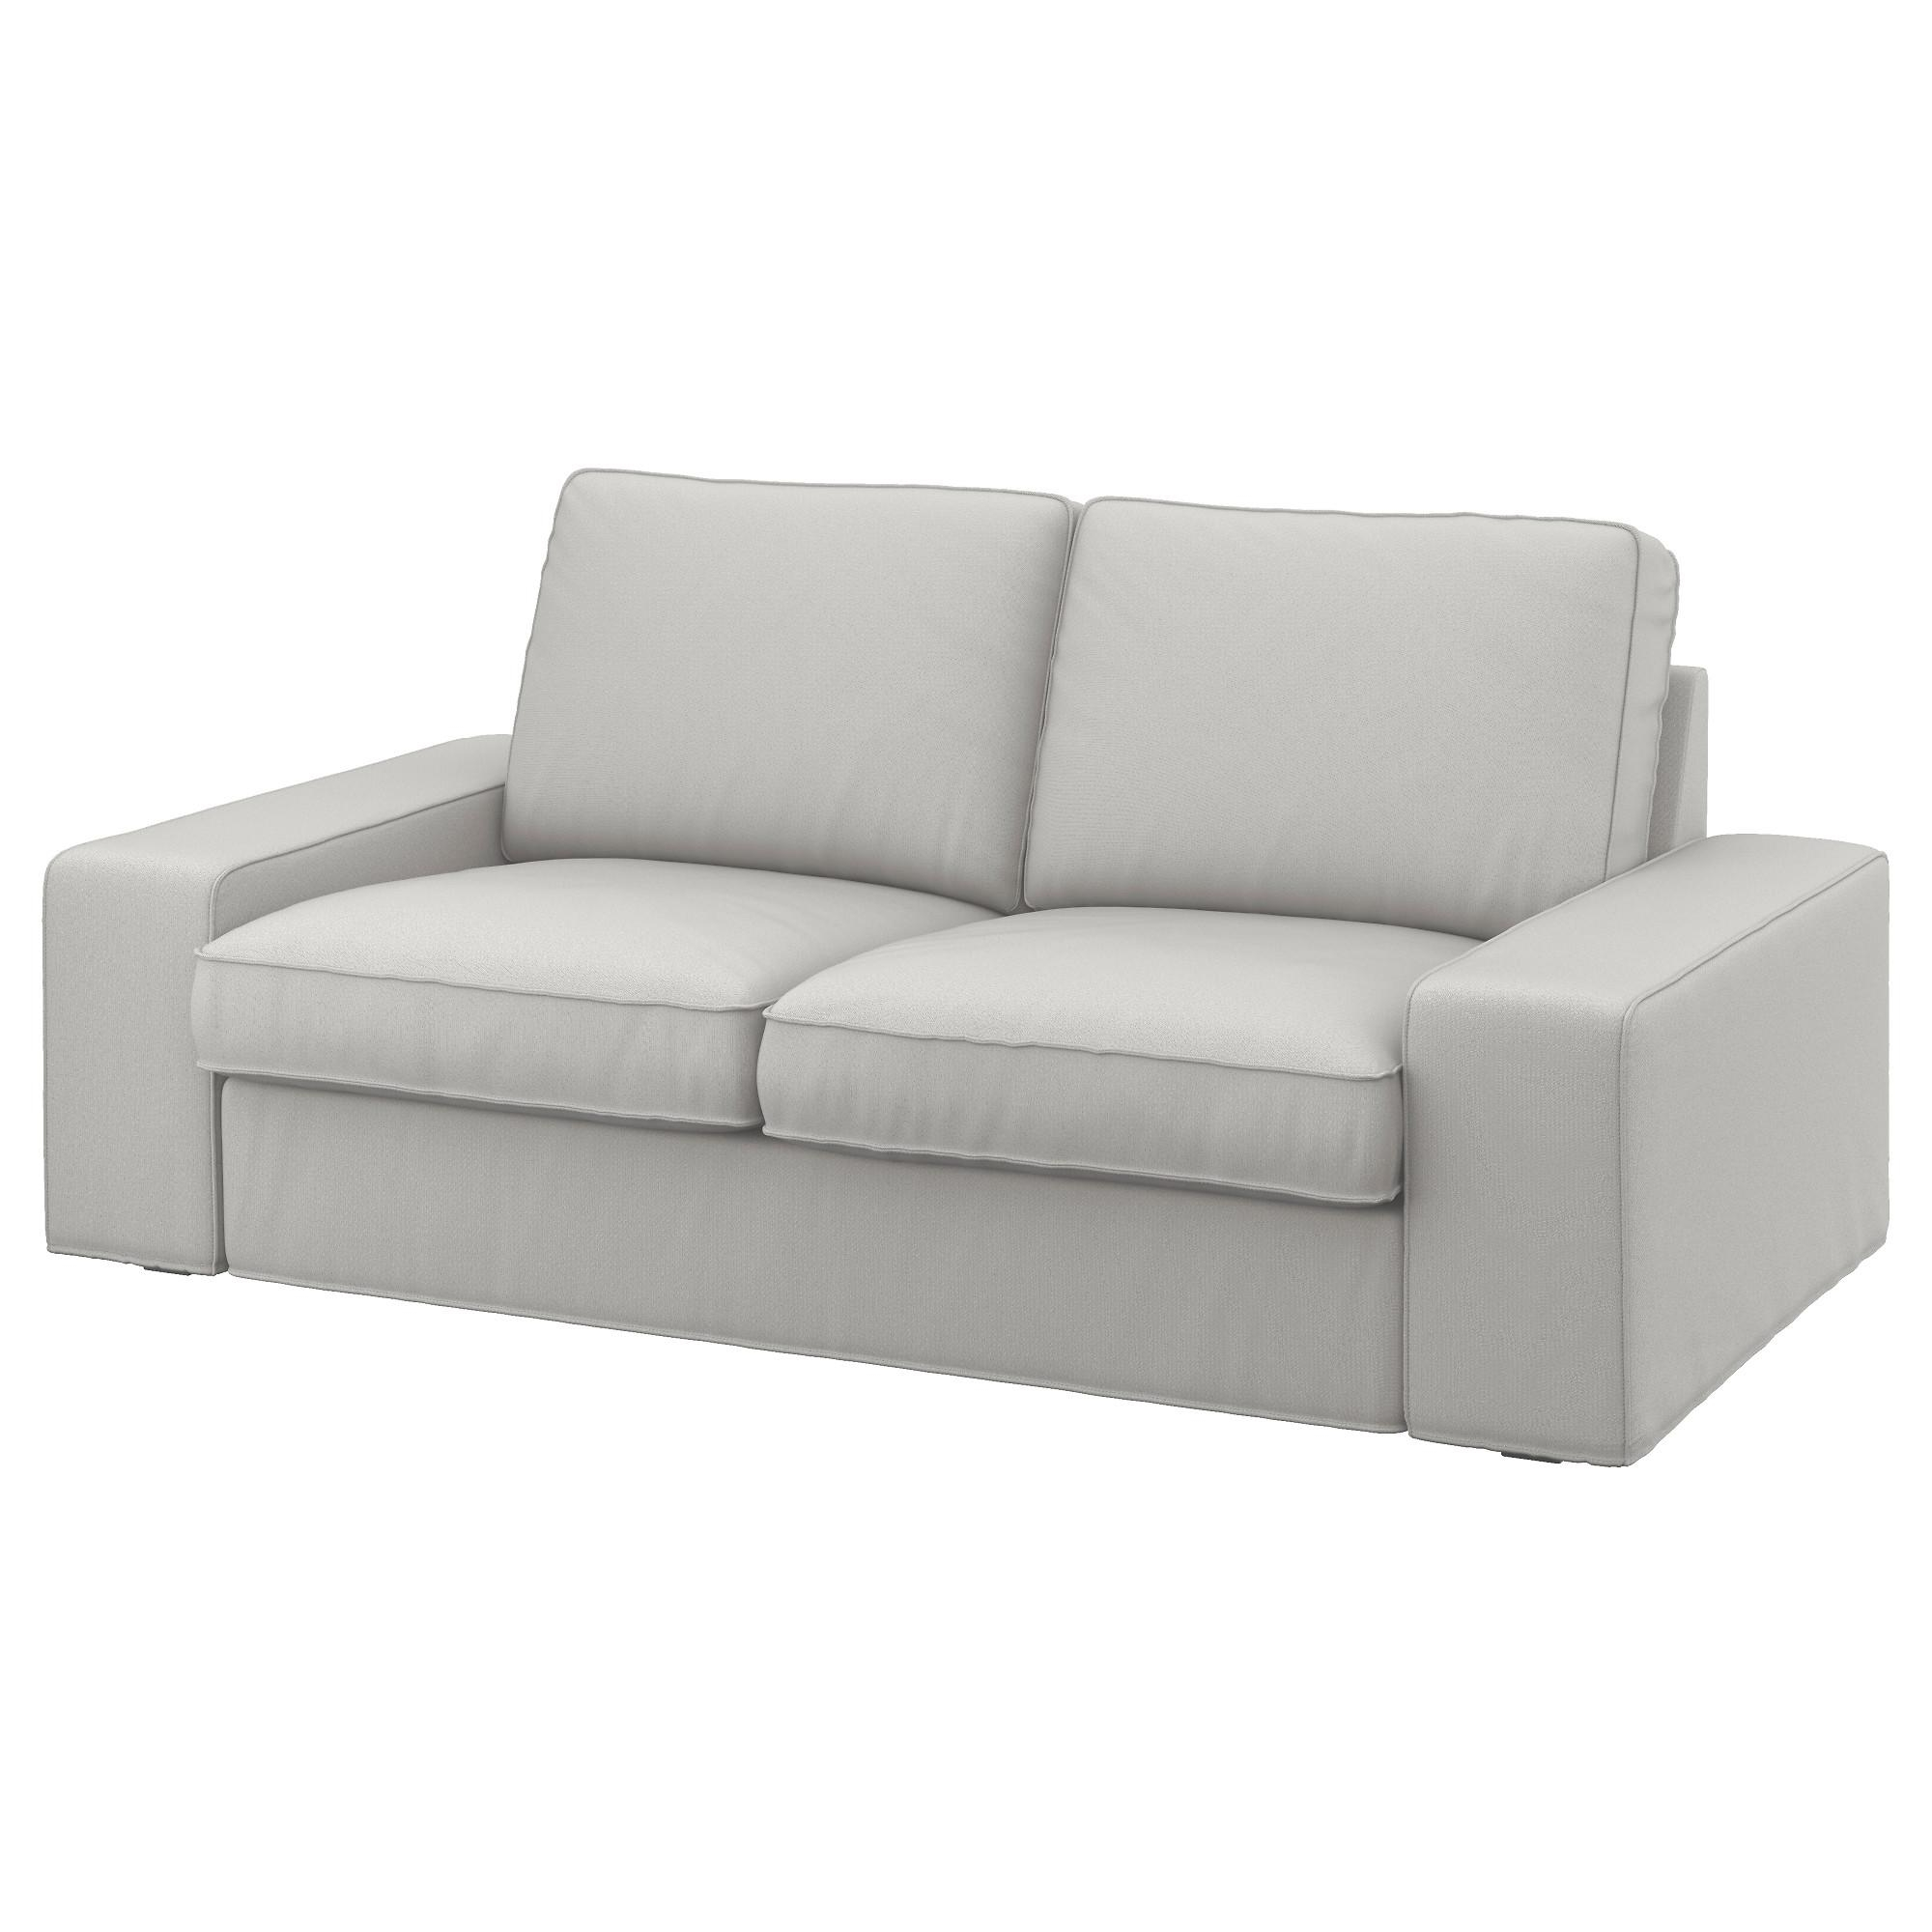 Kivik Two Seat Sofa Ramna Light Grey – Ikea Regarding Ikea Two Seater Sofas (View 8 of 20)